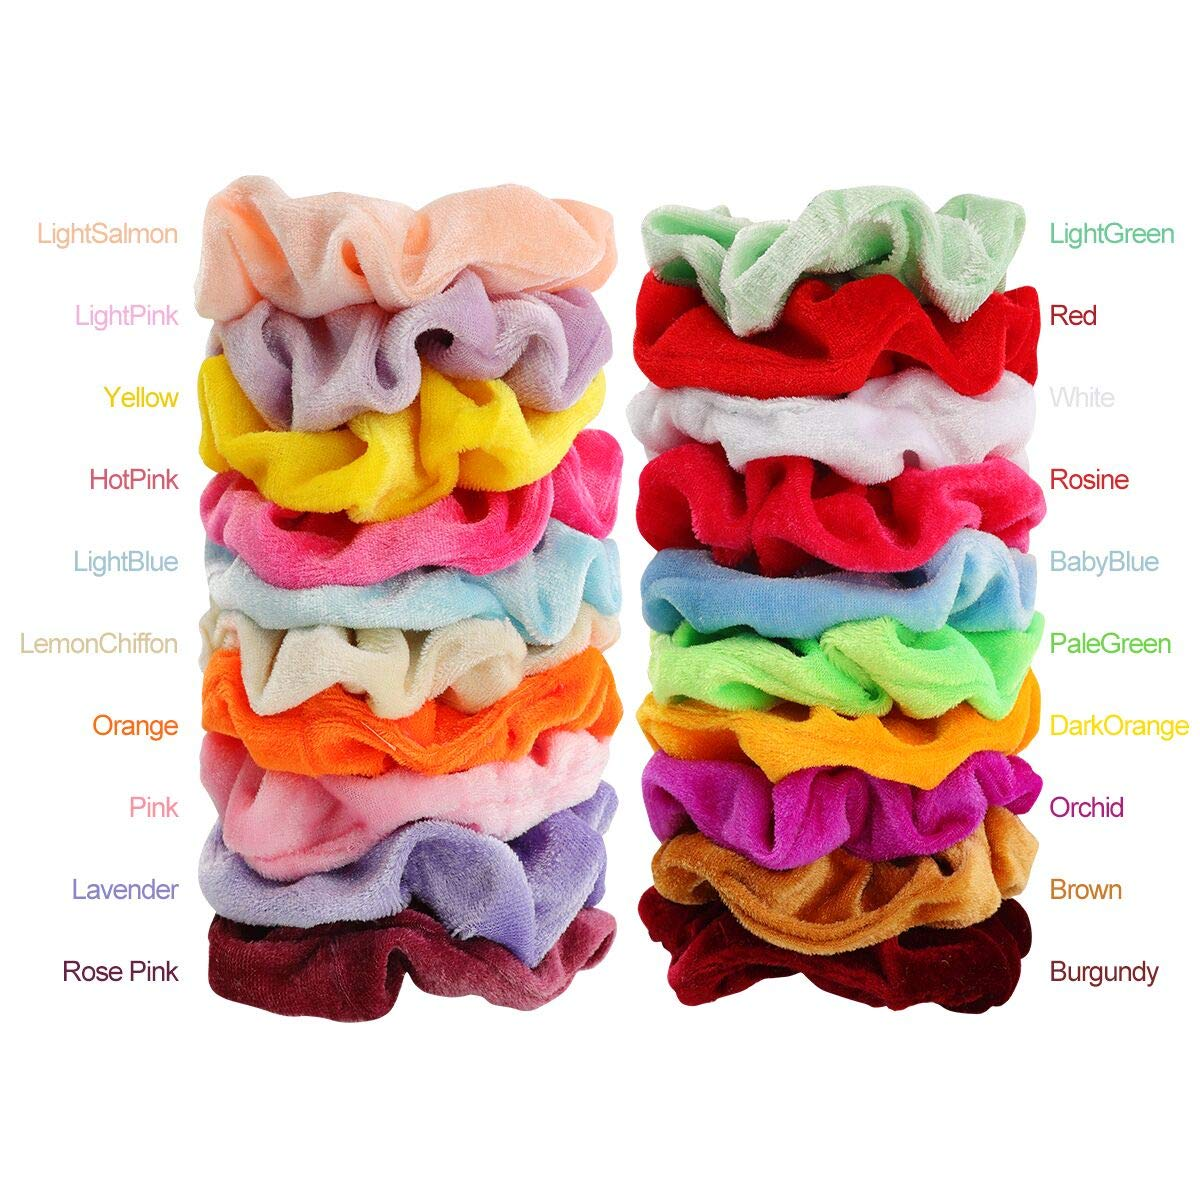 Mandydov 40pcs Hair Scrunchies Velvet Elastic Hair Bands Scrunchy Hair Ties Ropes 40 Pack Scrunchies for Women or Girls Hair Accessories - 40 Assorted Colors Scrunchies by Mandydov (Image #4)